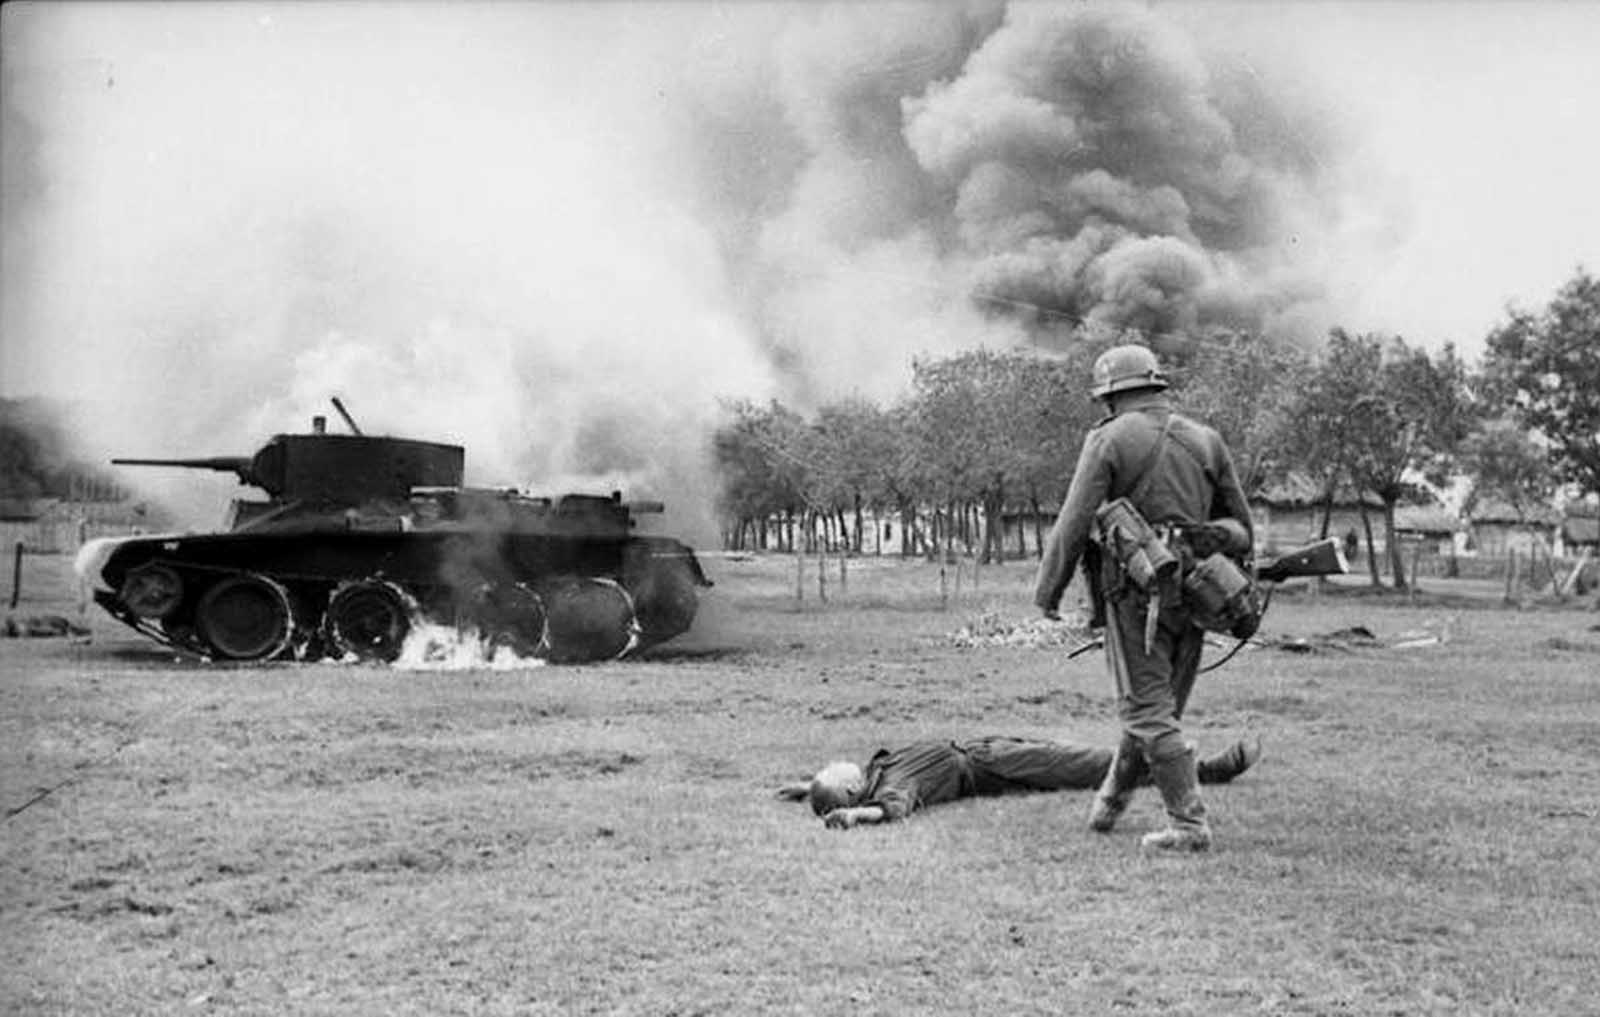 A German infantryman walks toward the body of a killed Soviet soldier and a burning BT-7 light tank in the southern Soviet Union in in 1941, during the early days of Operation Barbarossa.